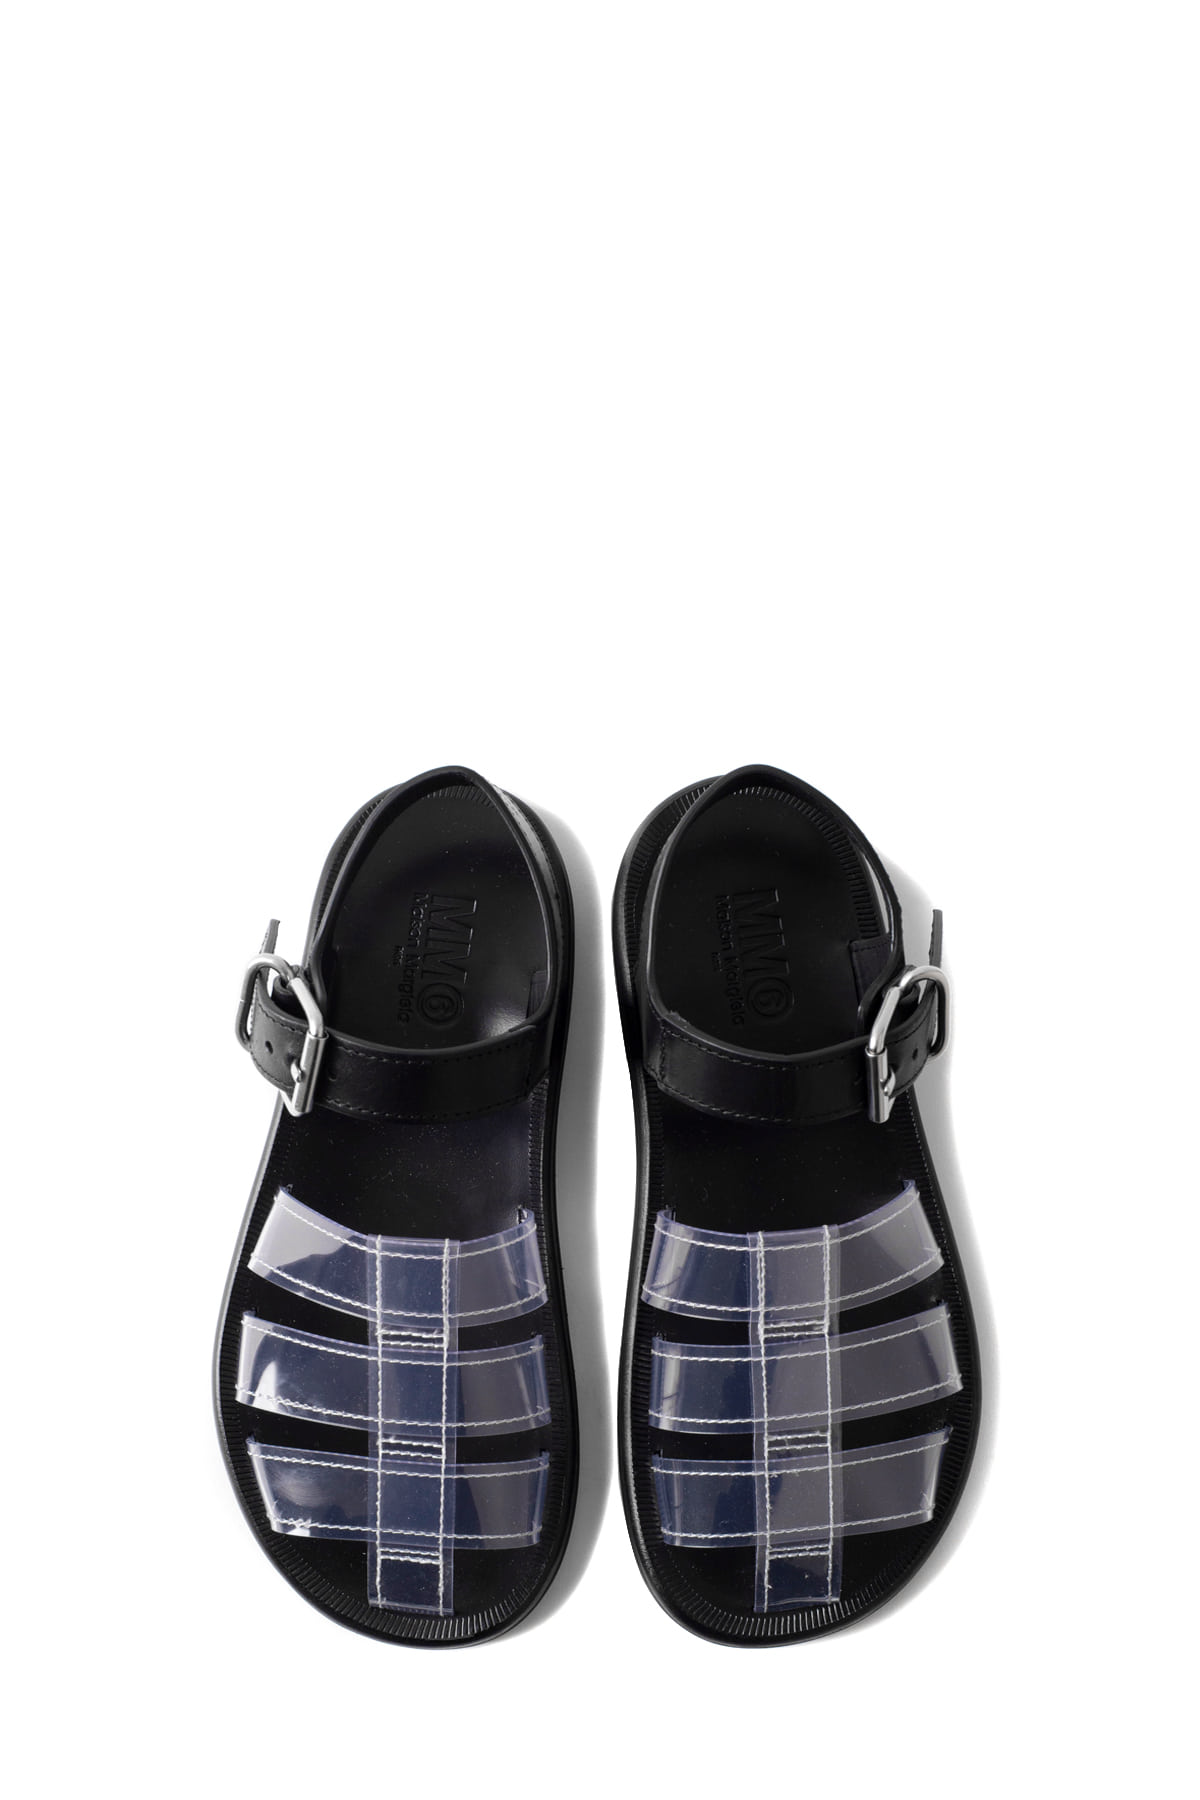 MM6 Maison Margiela : Sandals (Black)